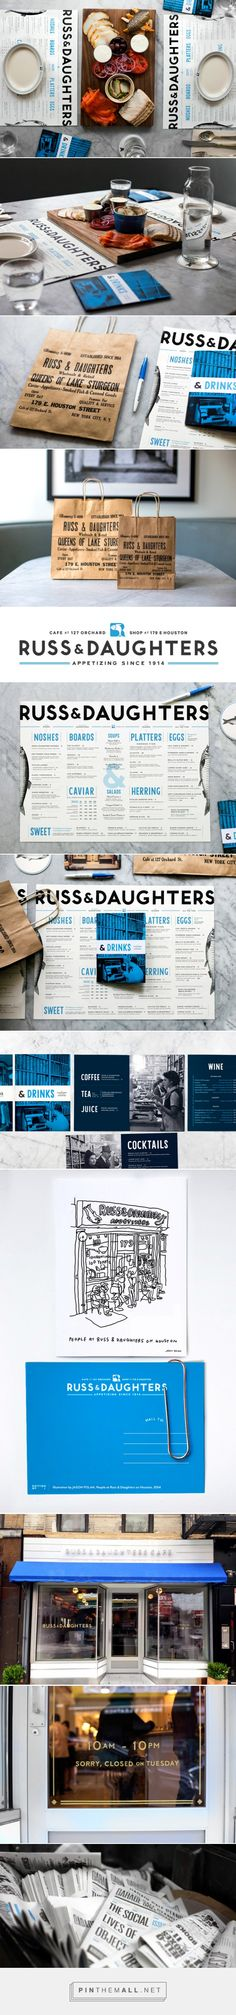 Kelli Anderson: Russ & Daughters | Design Work Life - created via http://pinthemall.net